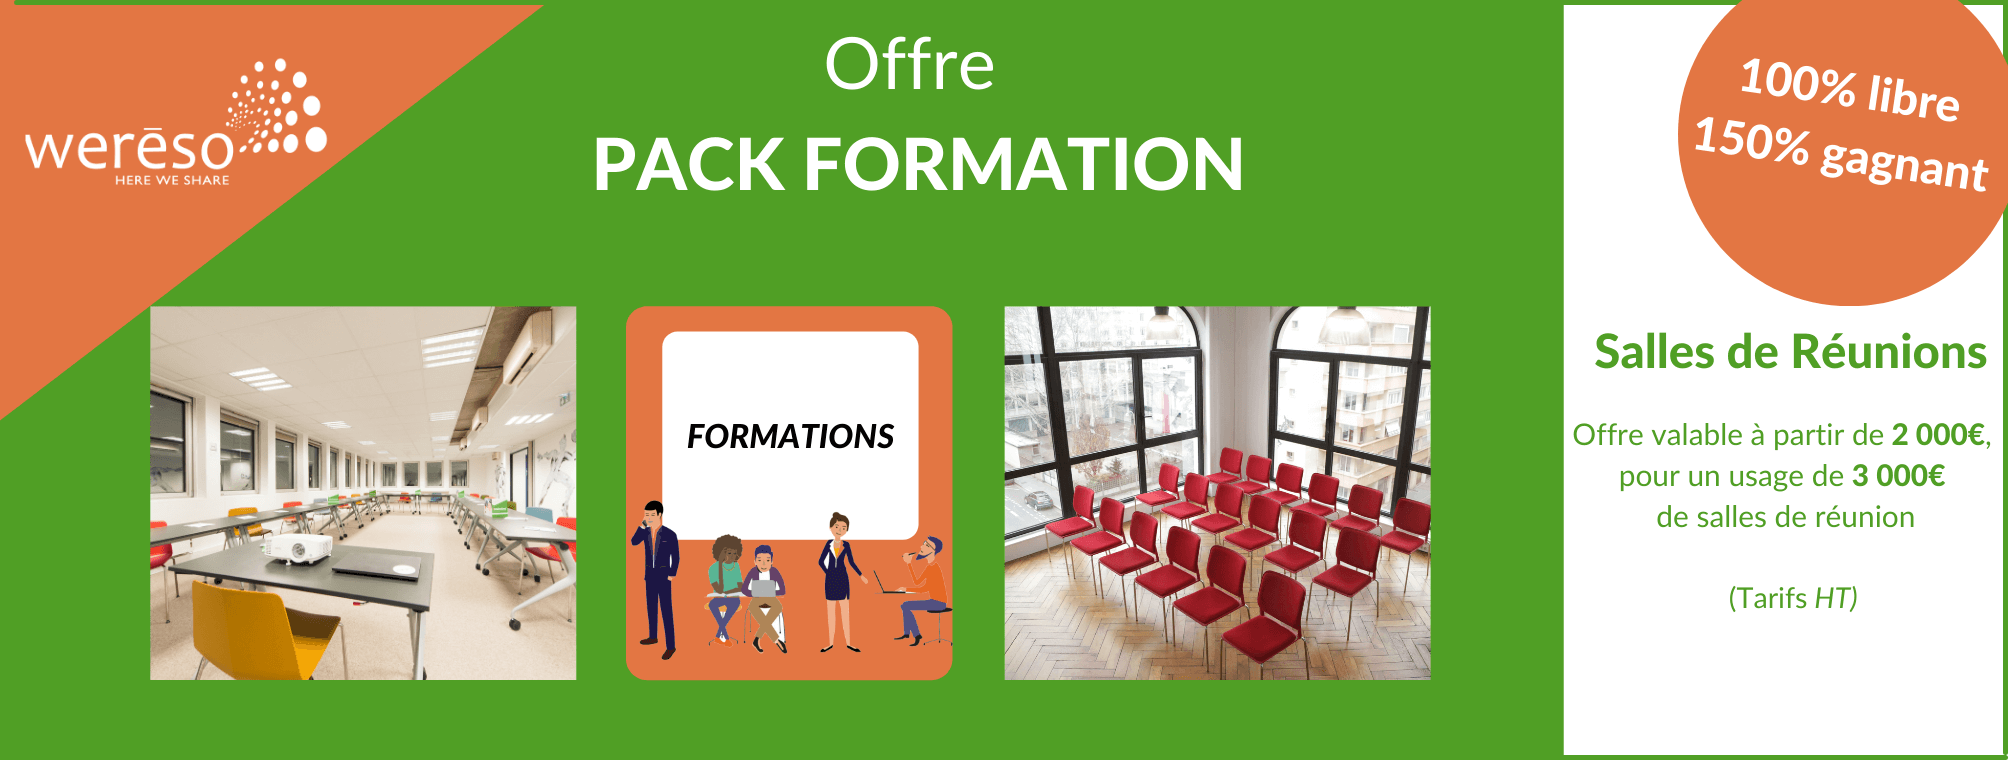 Offre PACK FORMATION : 100% libre, 150% gagnant